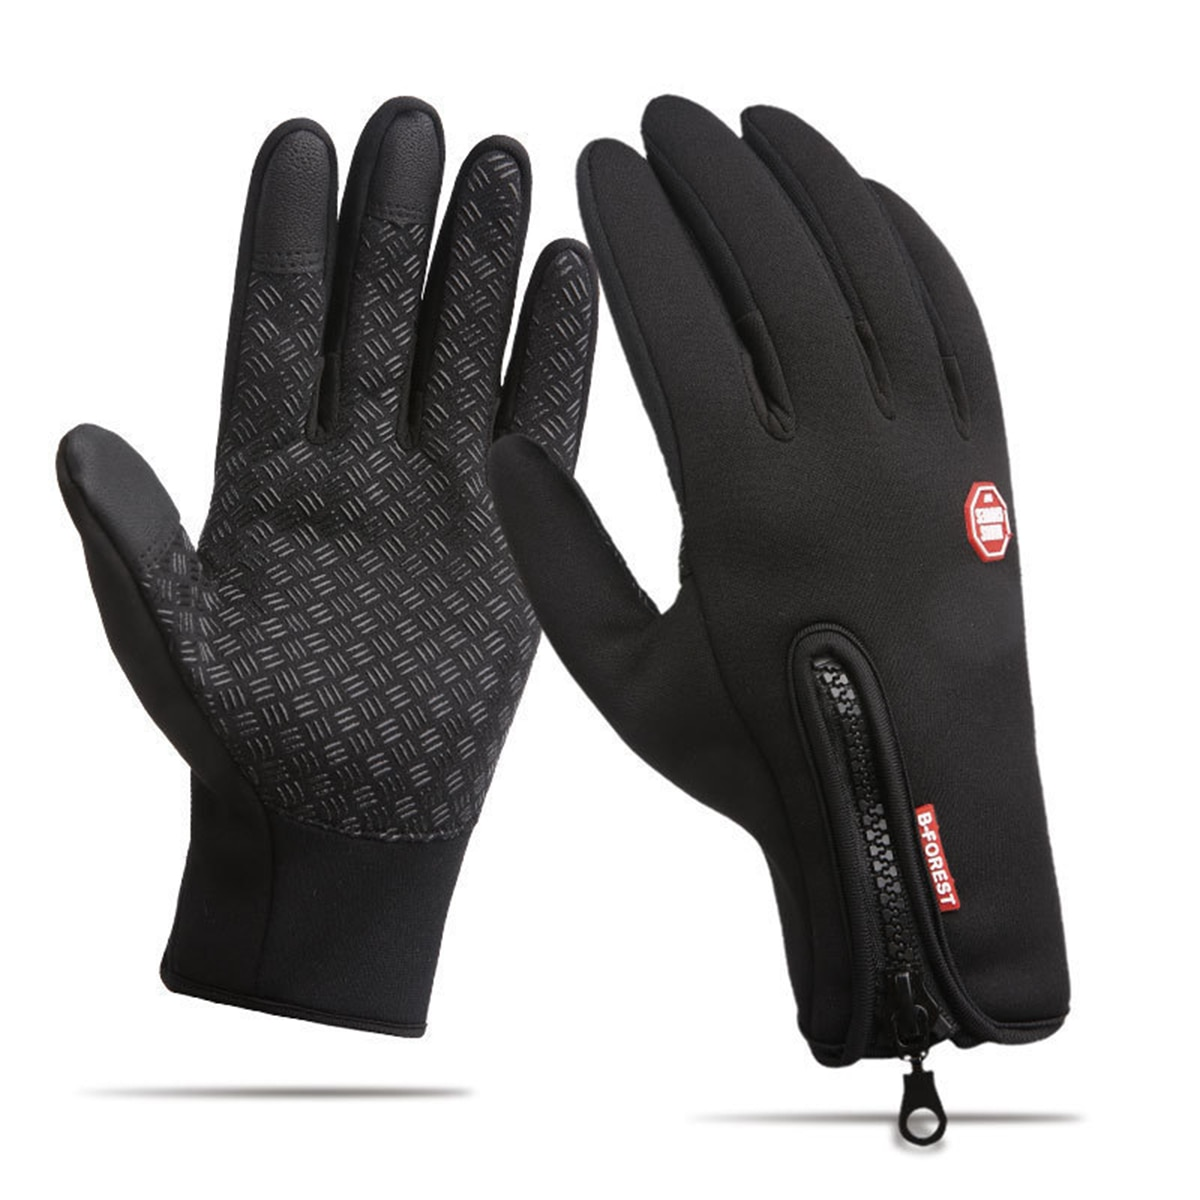 Unisex Touch Screen Windproof Ski Horse Riding Gloves Breathable Warm Equestrian Gloves For Men Women Black Zipper Gloves